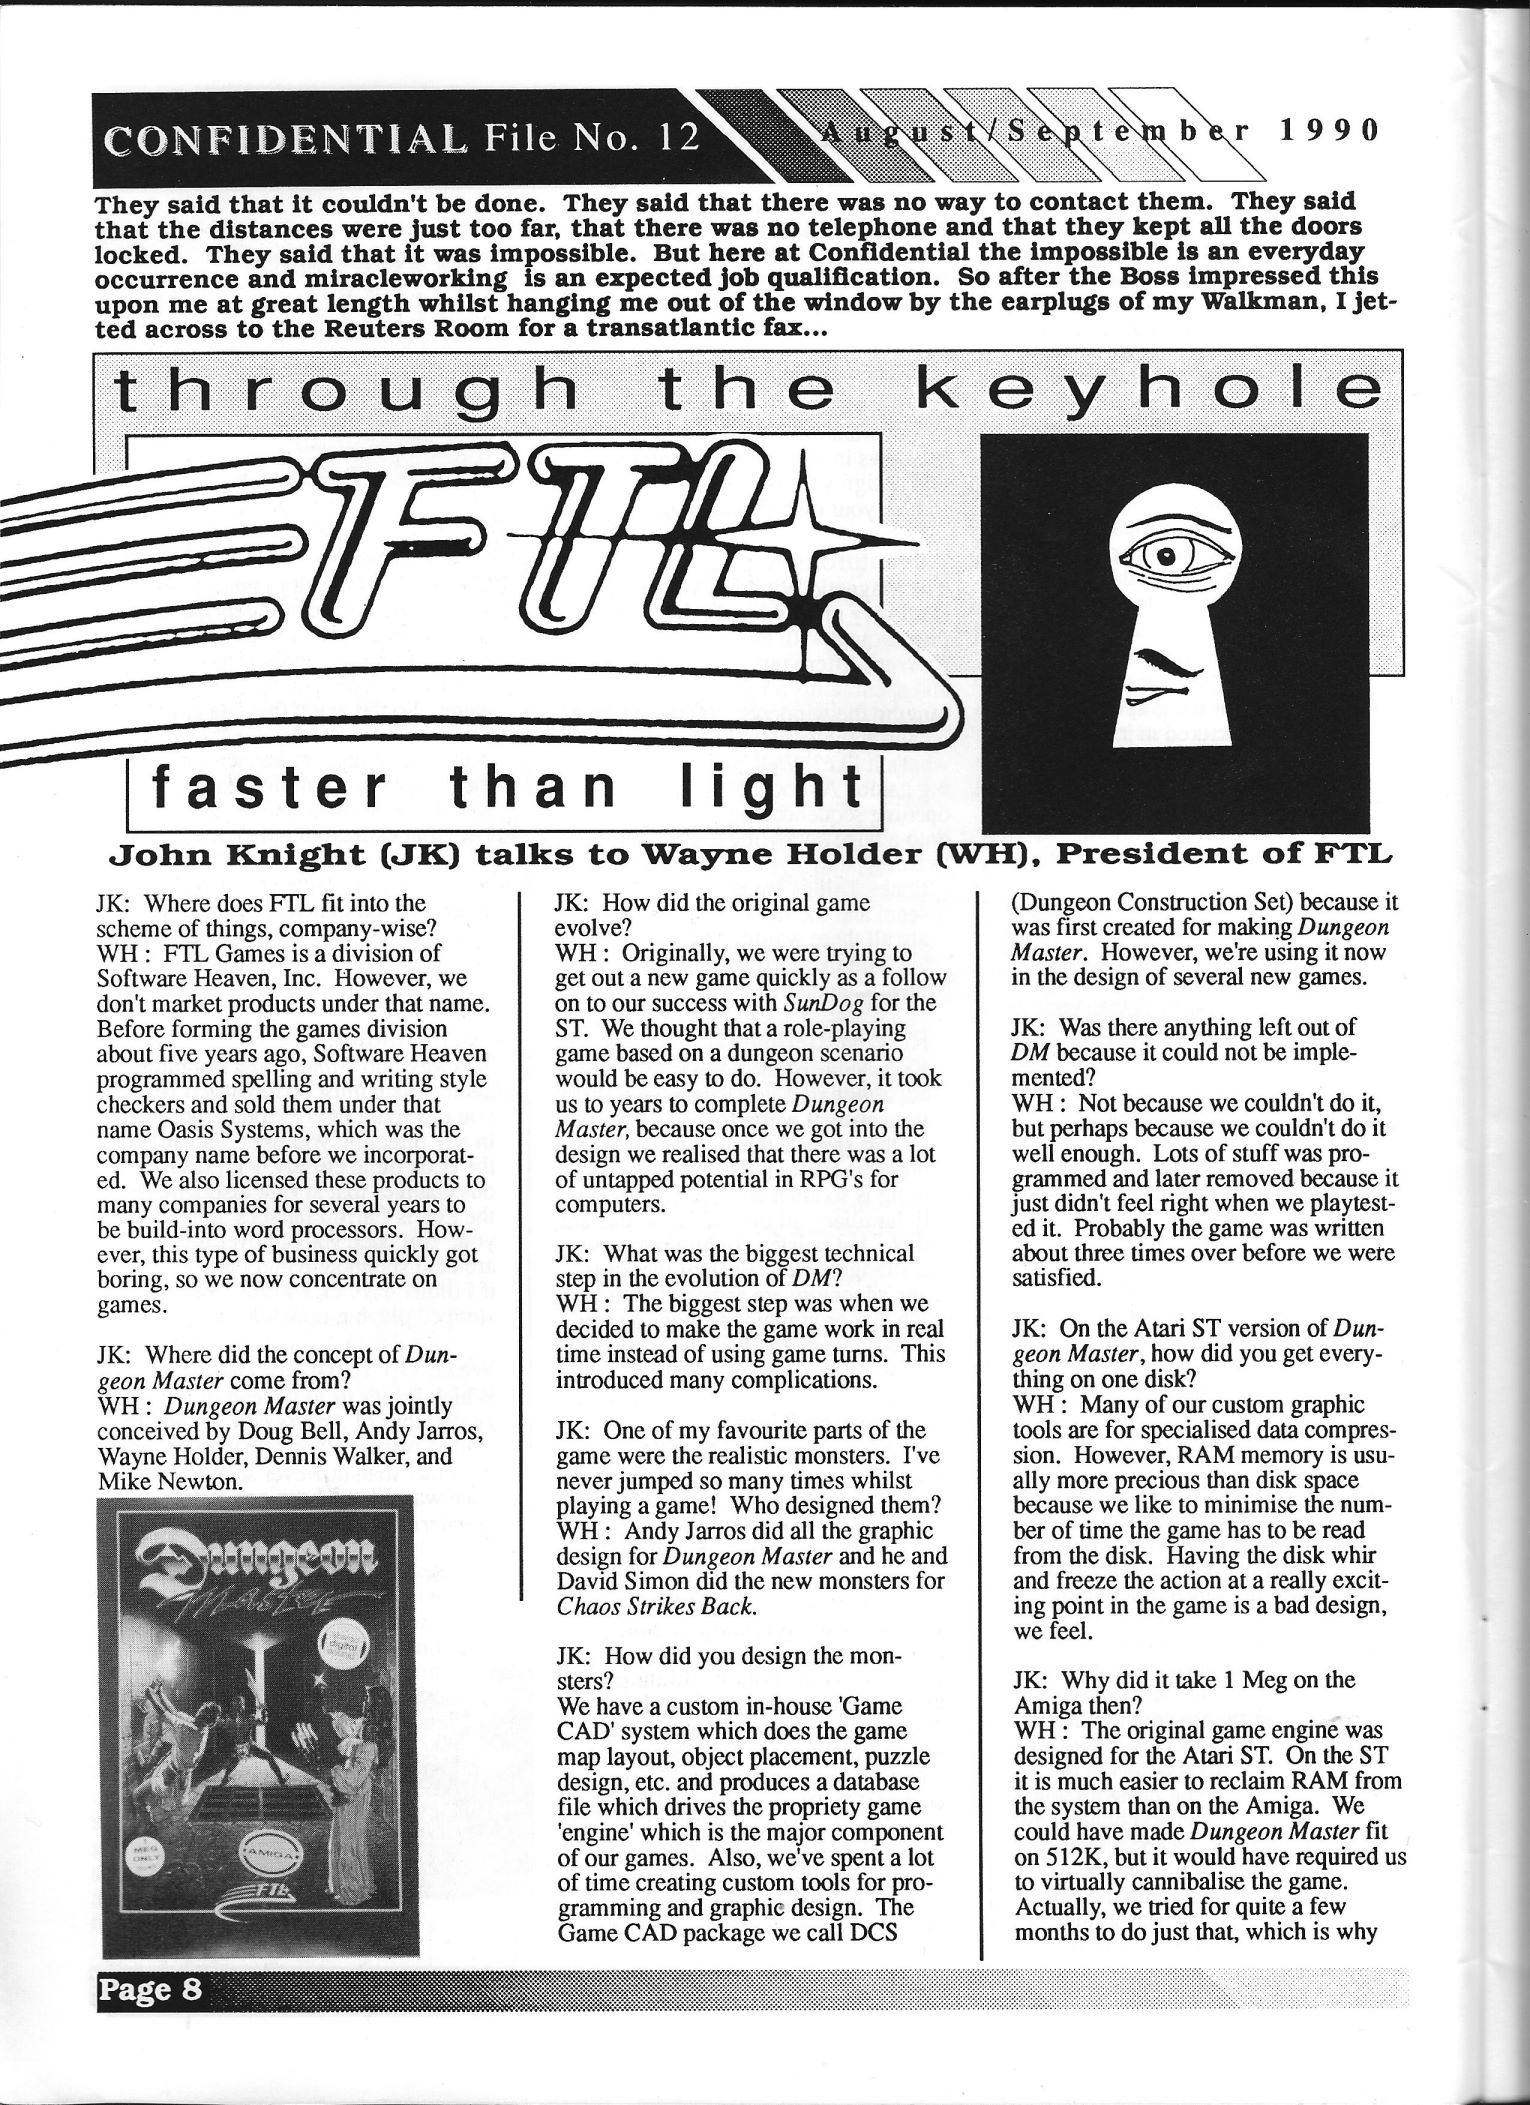 FTL Article published in British magazine 'Confidential', Issue #12 August-September 1990, Page 8